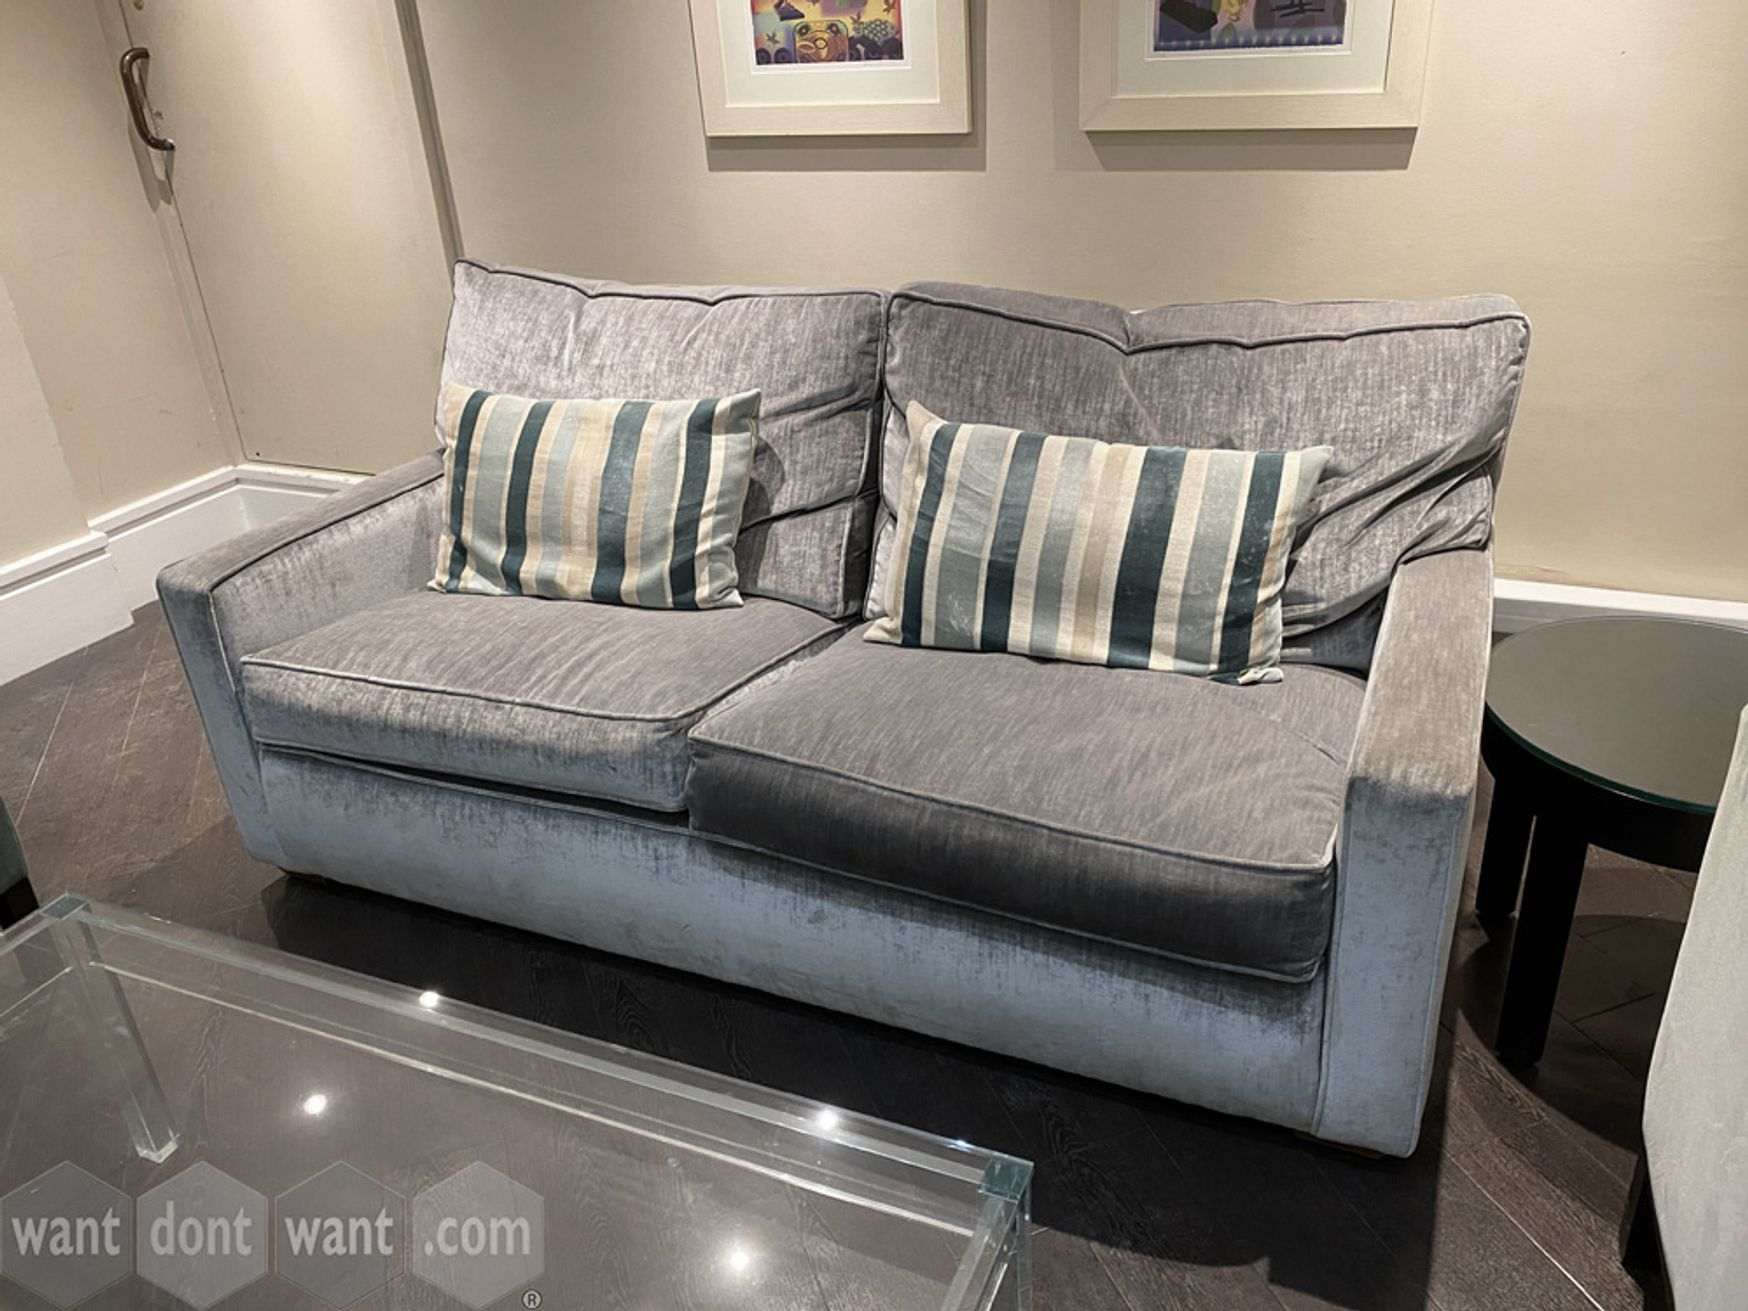 Used 2-seat sofa in very good condition.